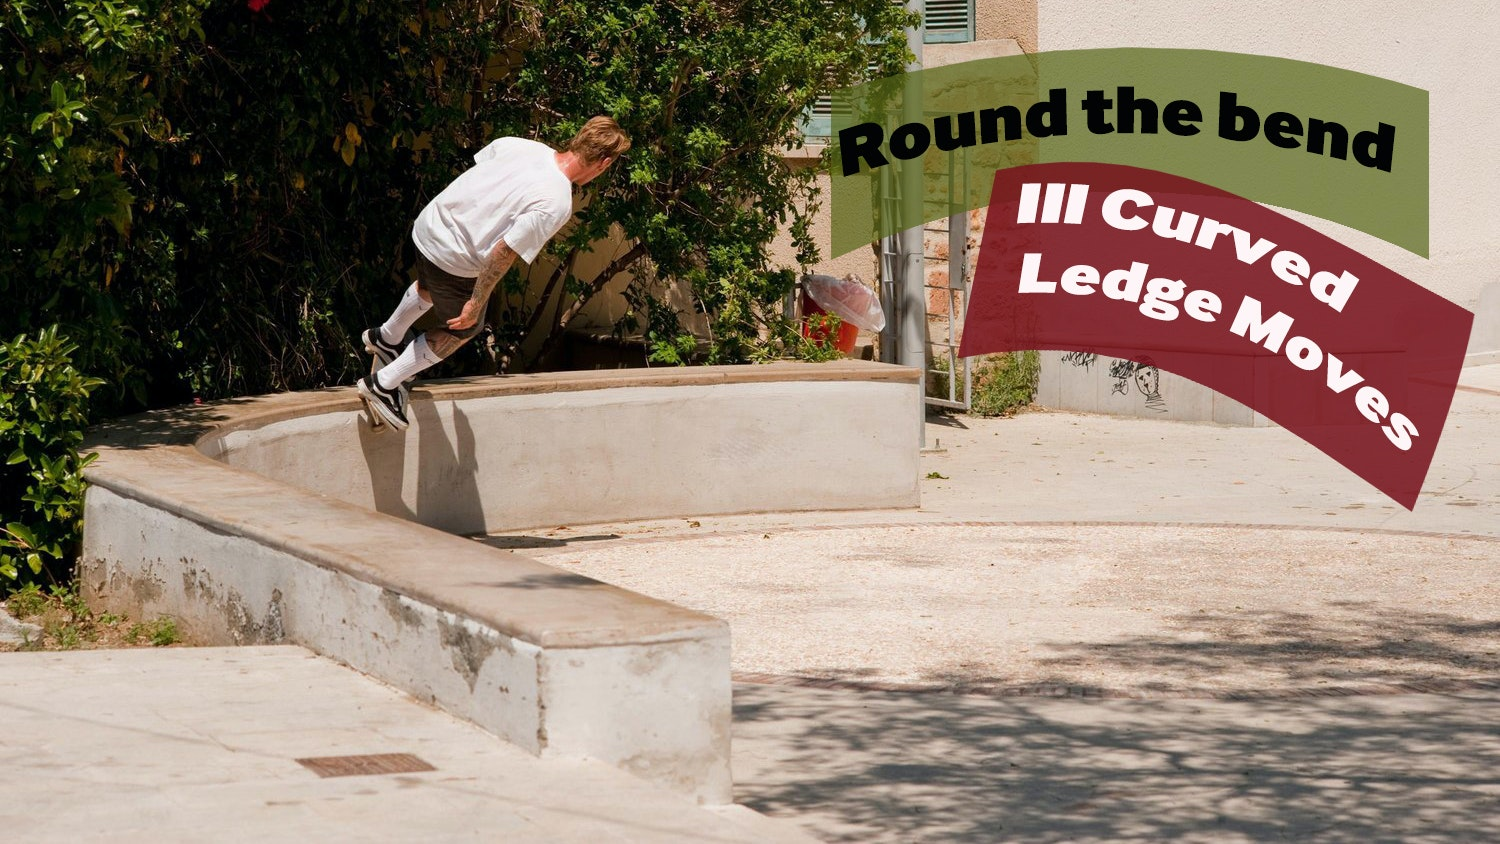 ill-curved-ledge-moves-ave-feeblegrind-cyprus-jonmehring